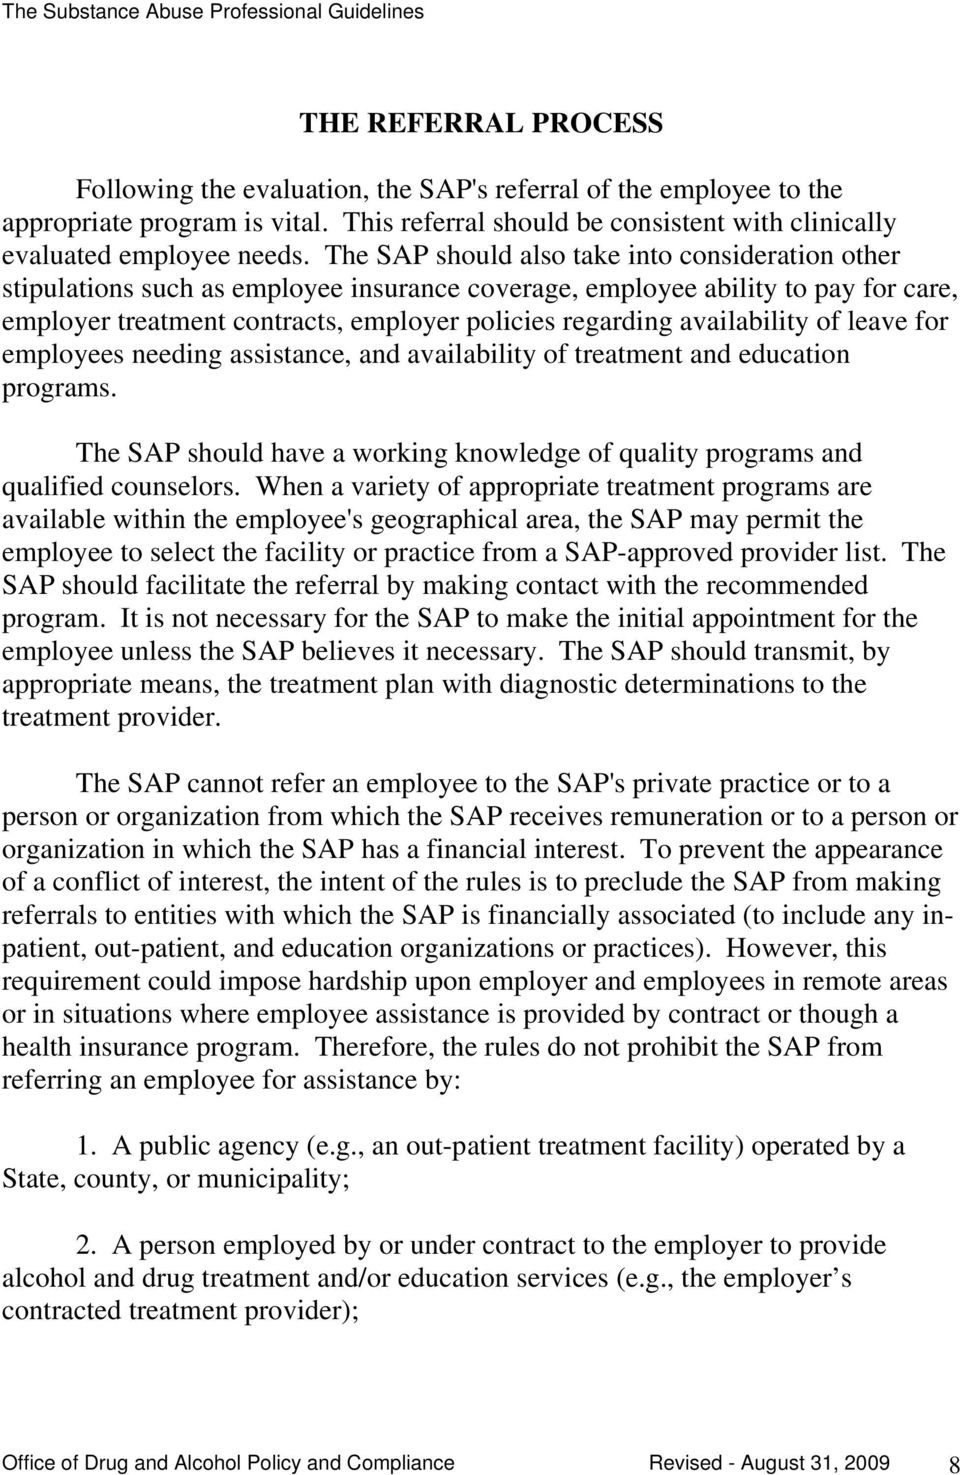 availability of leave for employees needing assistance, and availability of treatment and education programs. The SAP should have a working knowledge of quality programs and qualified counselors.